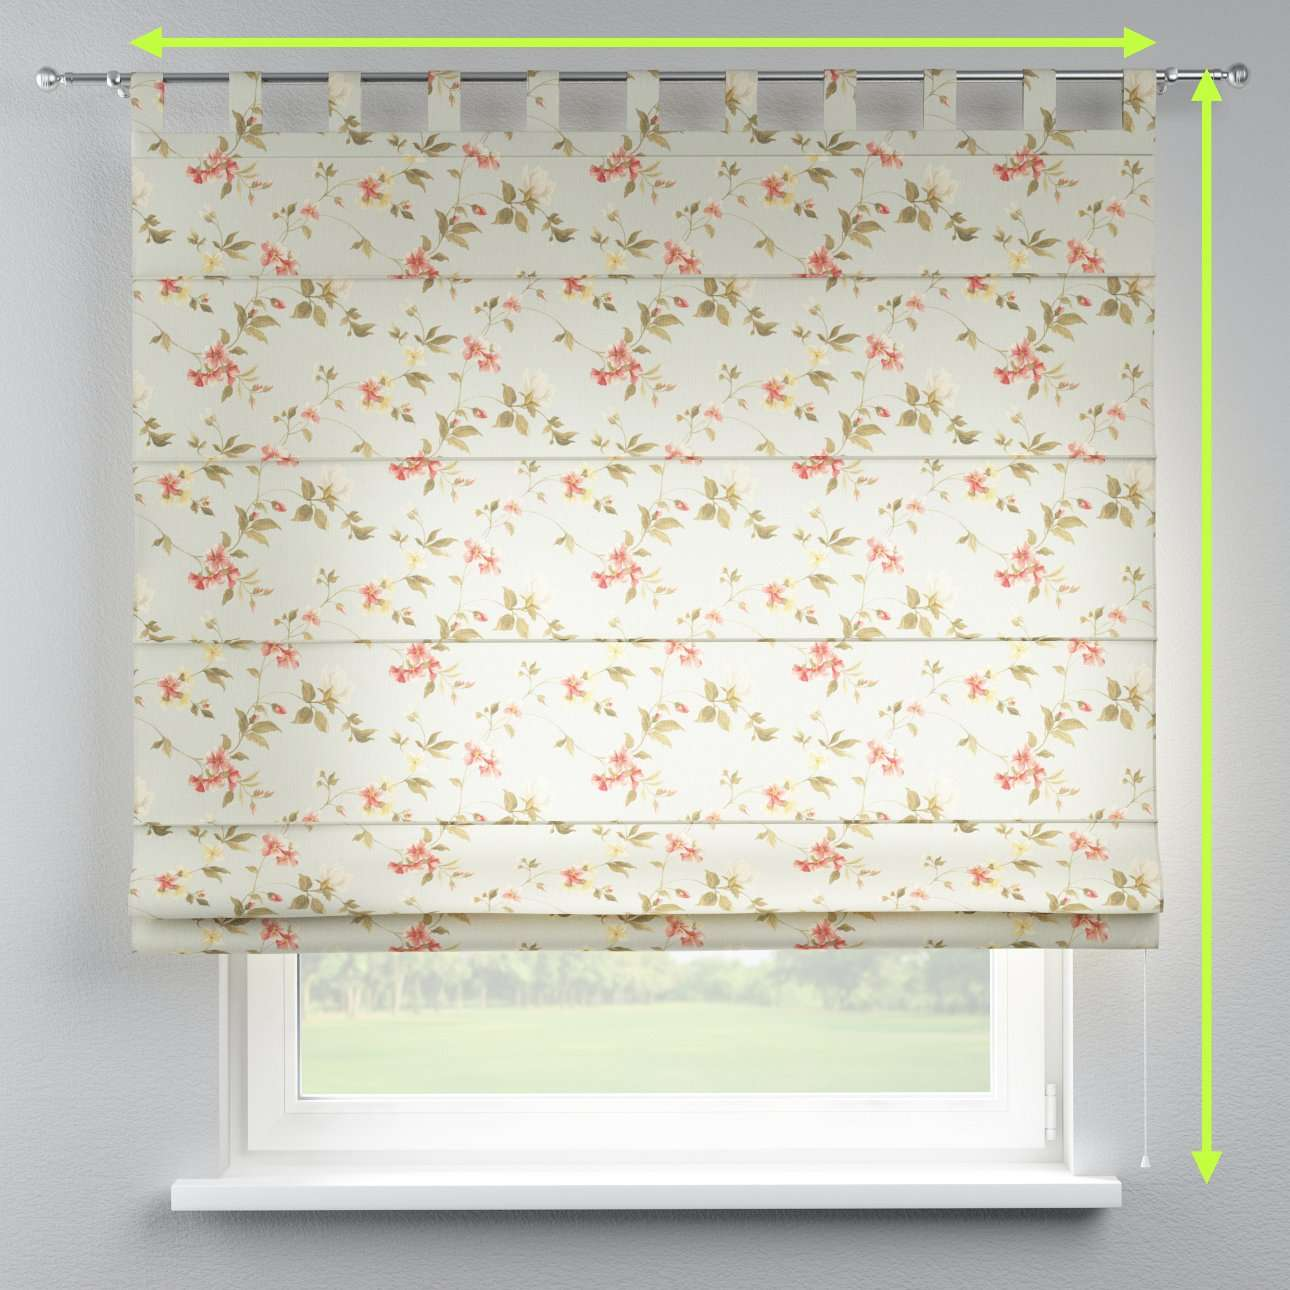 Verona tab top roman blind in collection Londres, fabric: 124-65